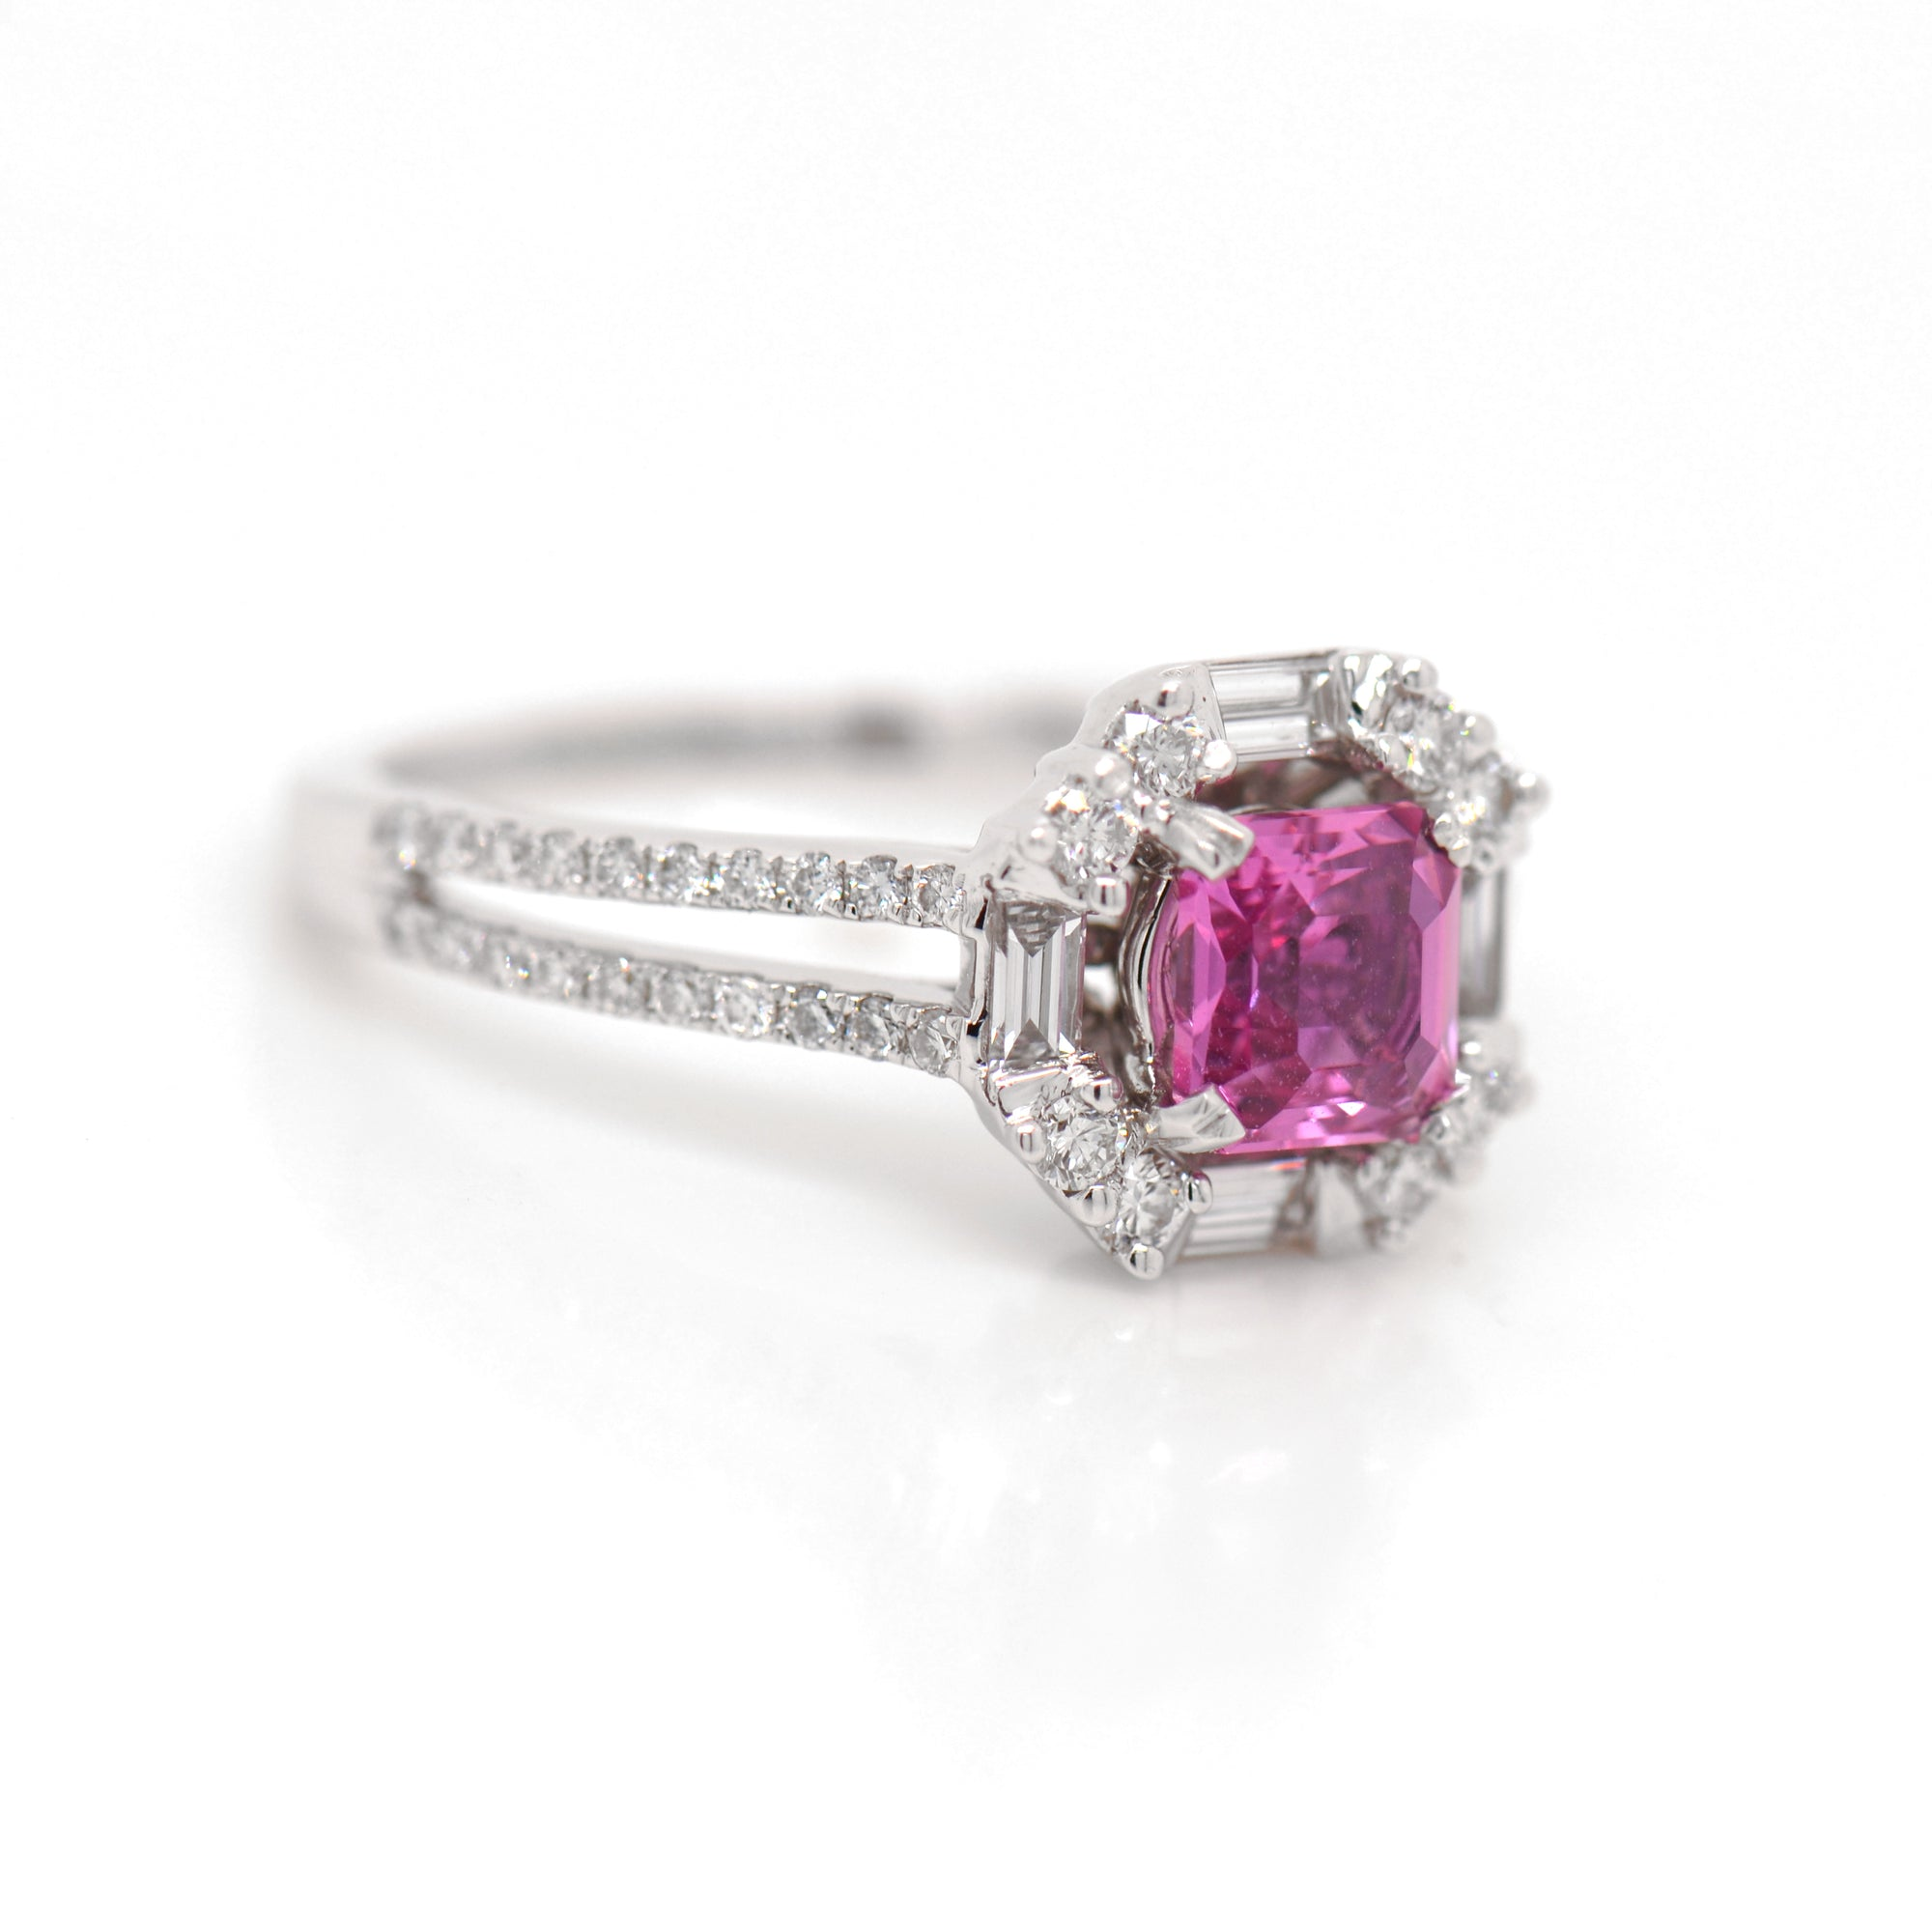 18K White Gold Vivid Pink Sapphire And Diamond Ring